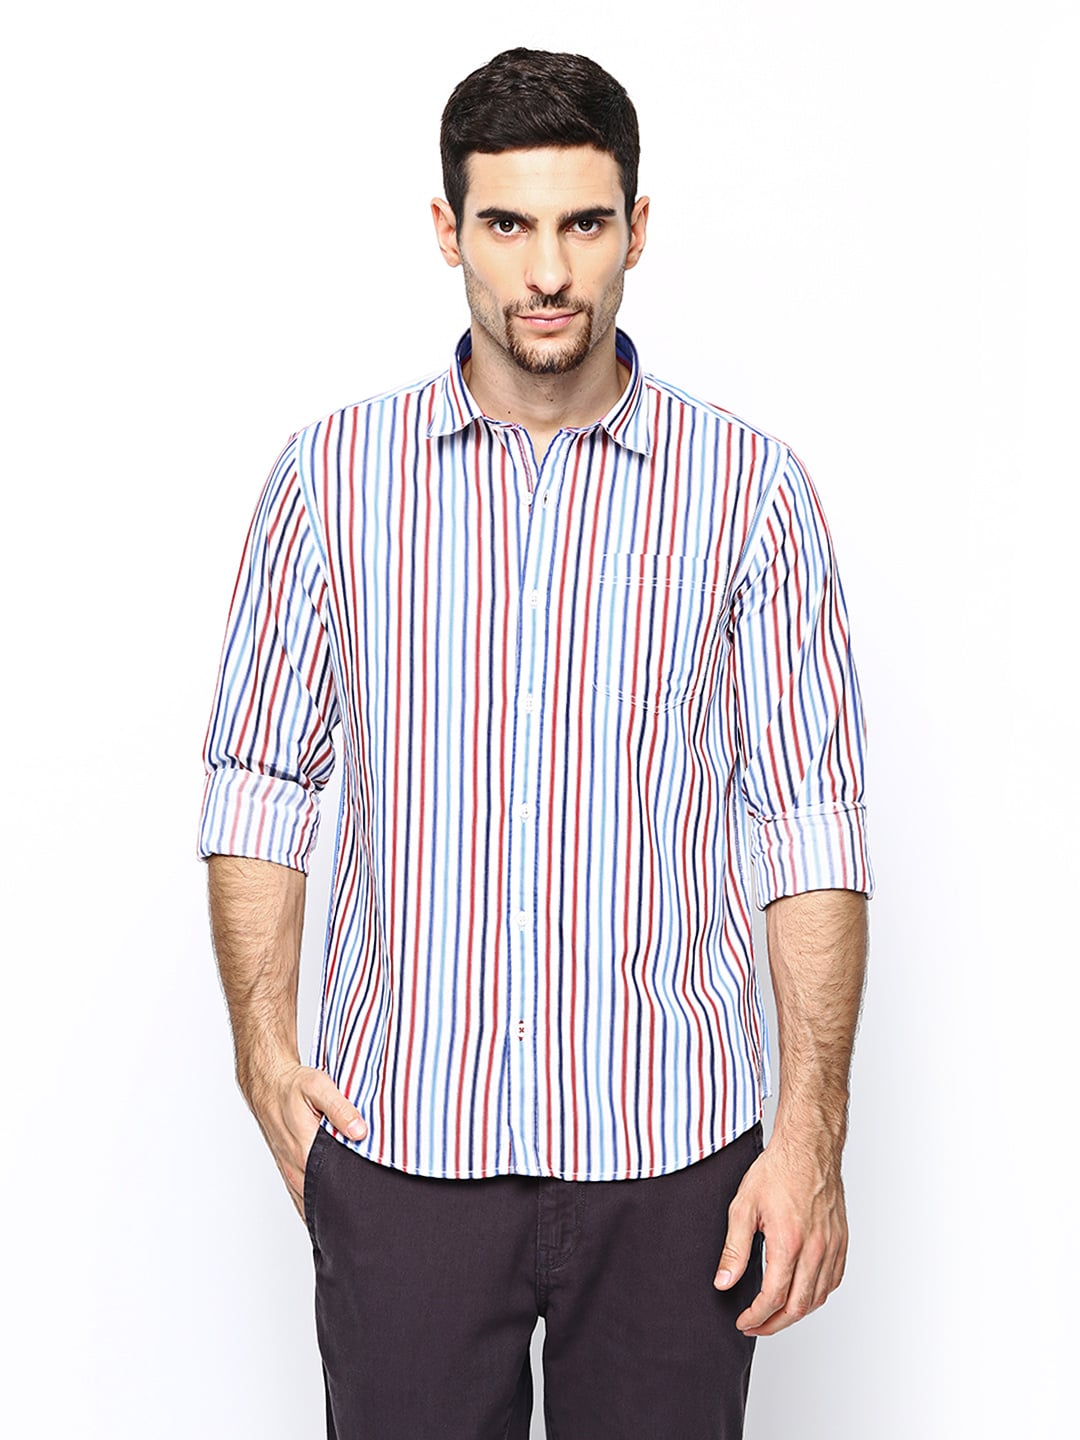 Oxemberg Oxemberg Men White Striped Casual Shirt (Multicolor)